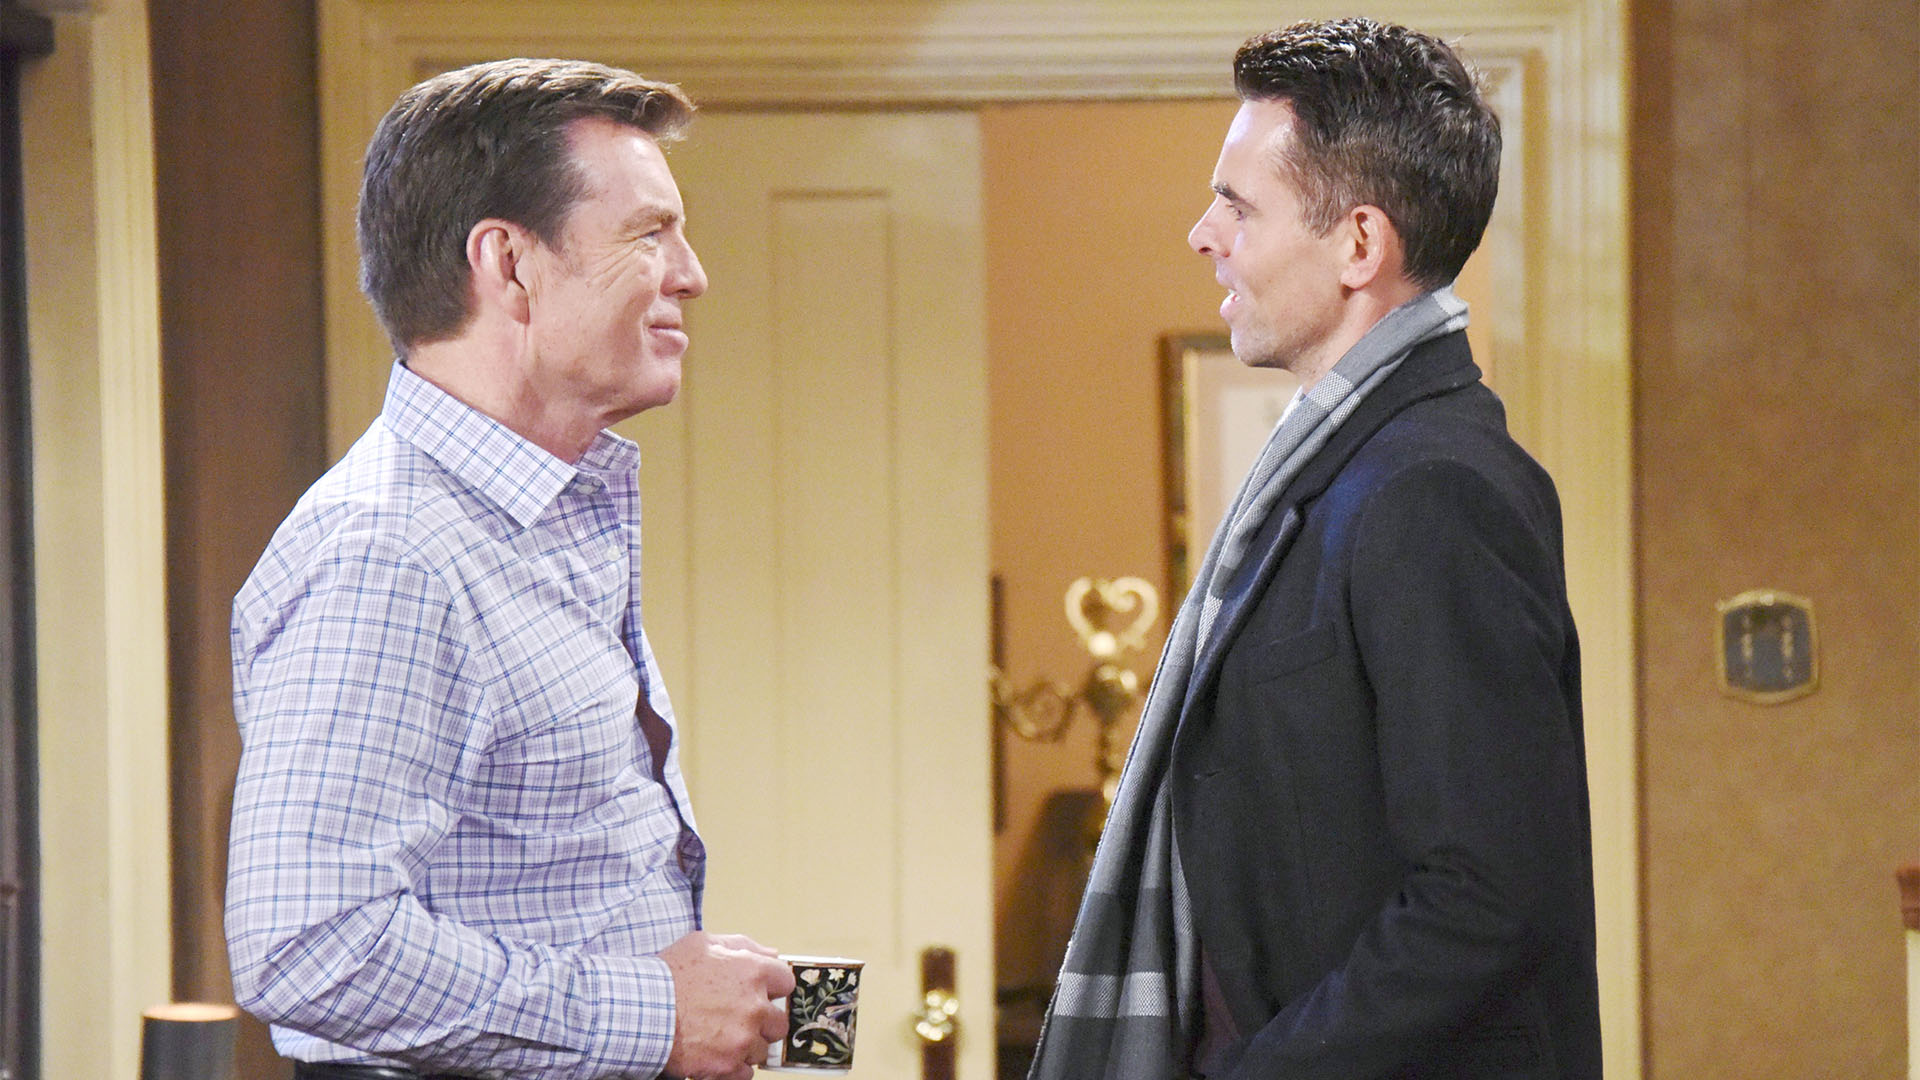 Billy encourages Jack and Ashley to make amends.